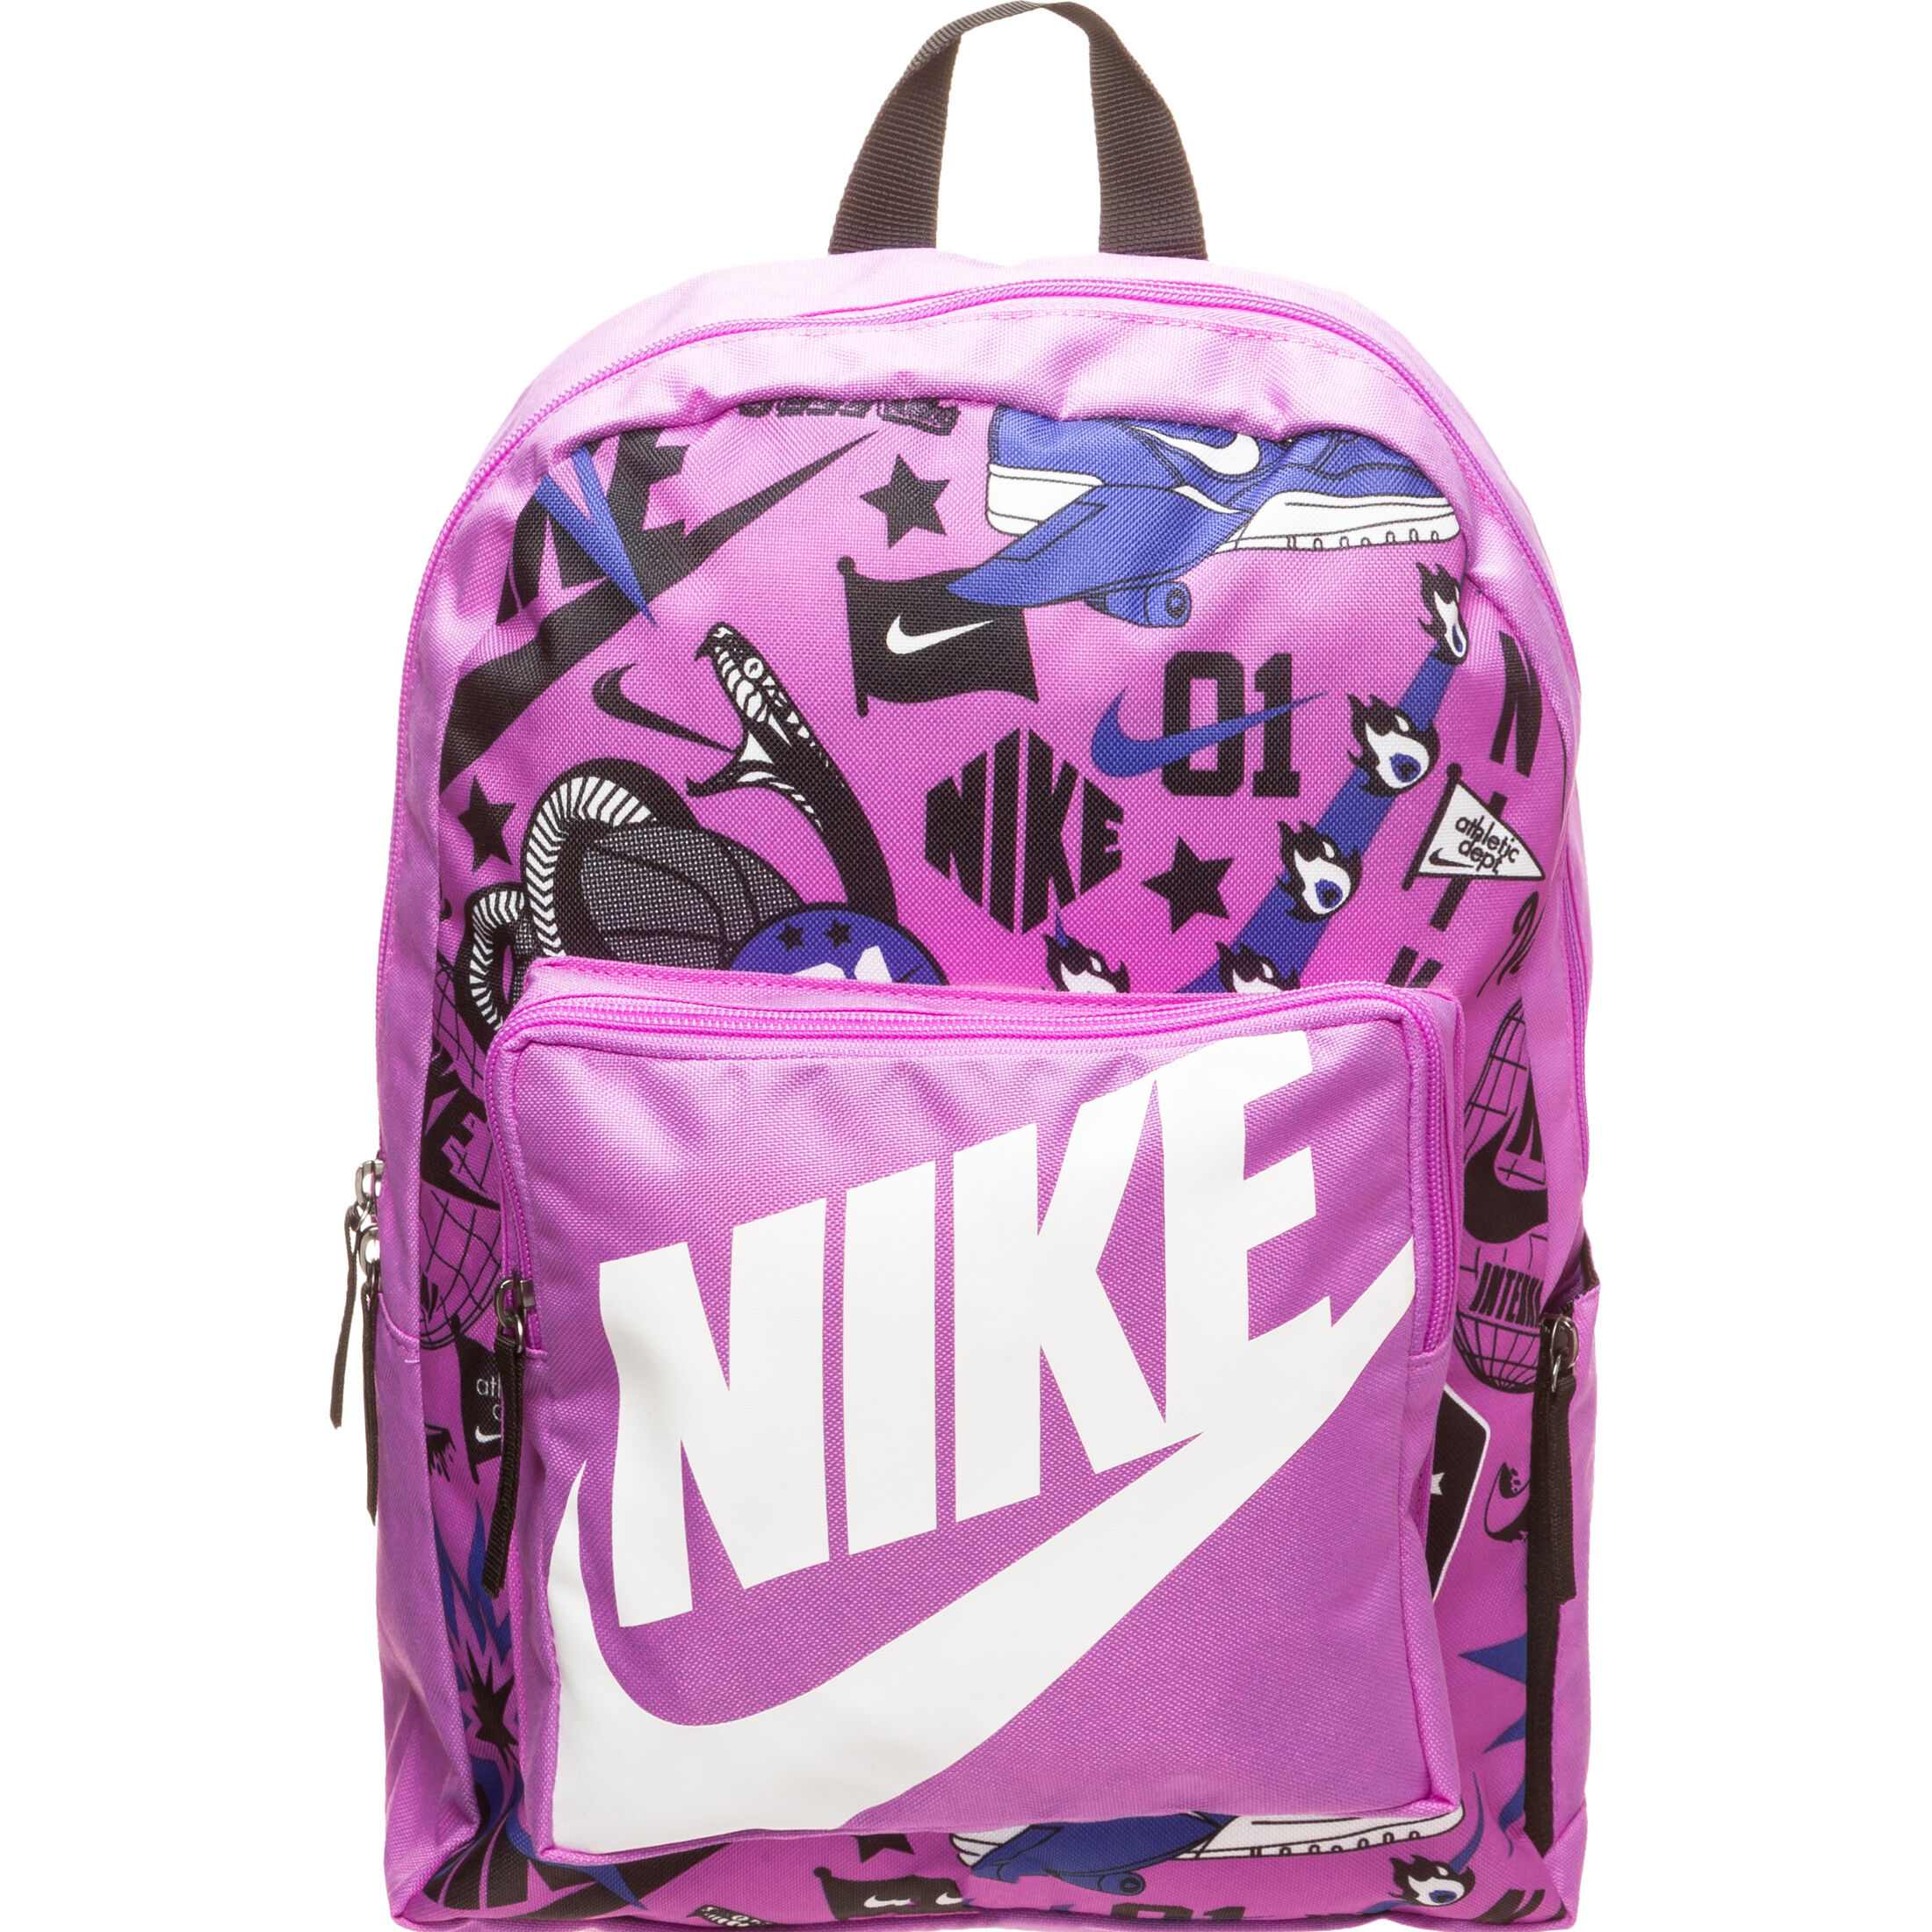 Nike Performance Classic Rucksack Kinder bei OUTFITTER